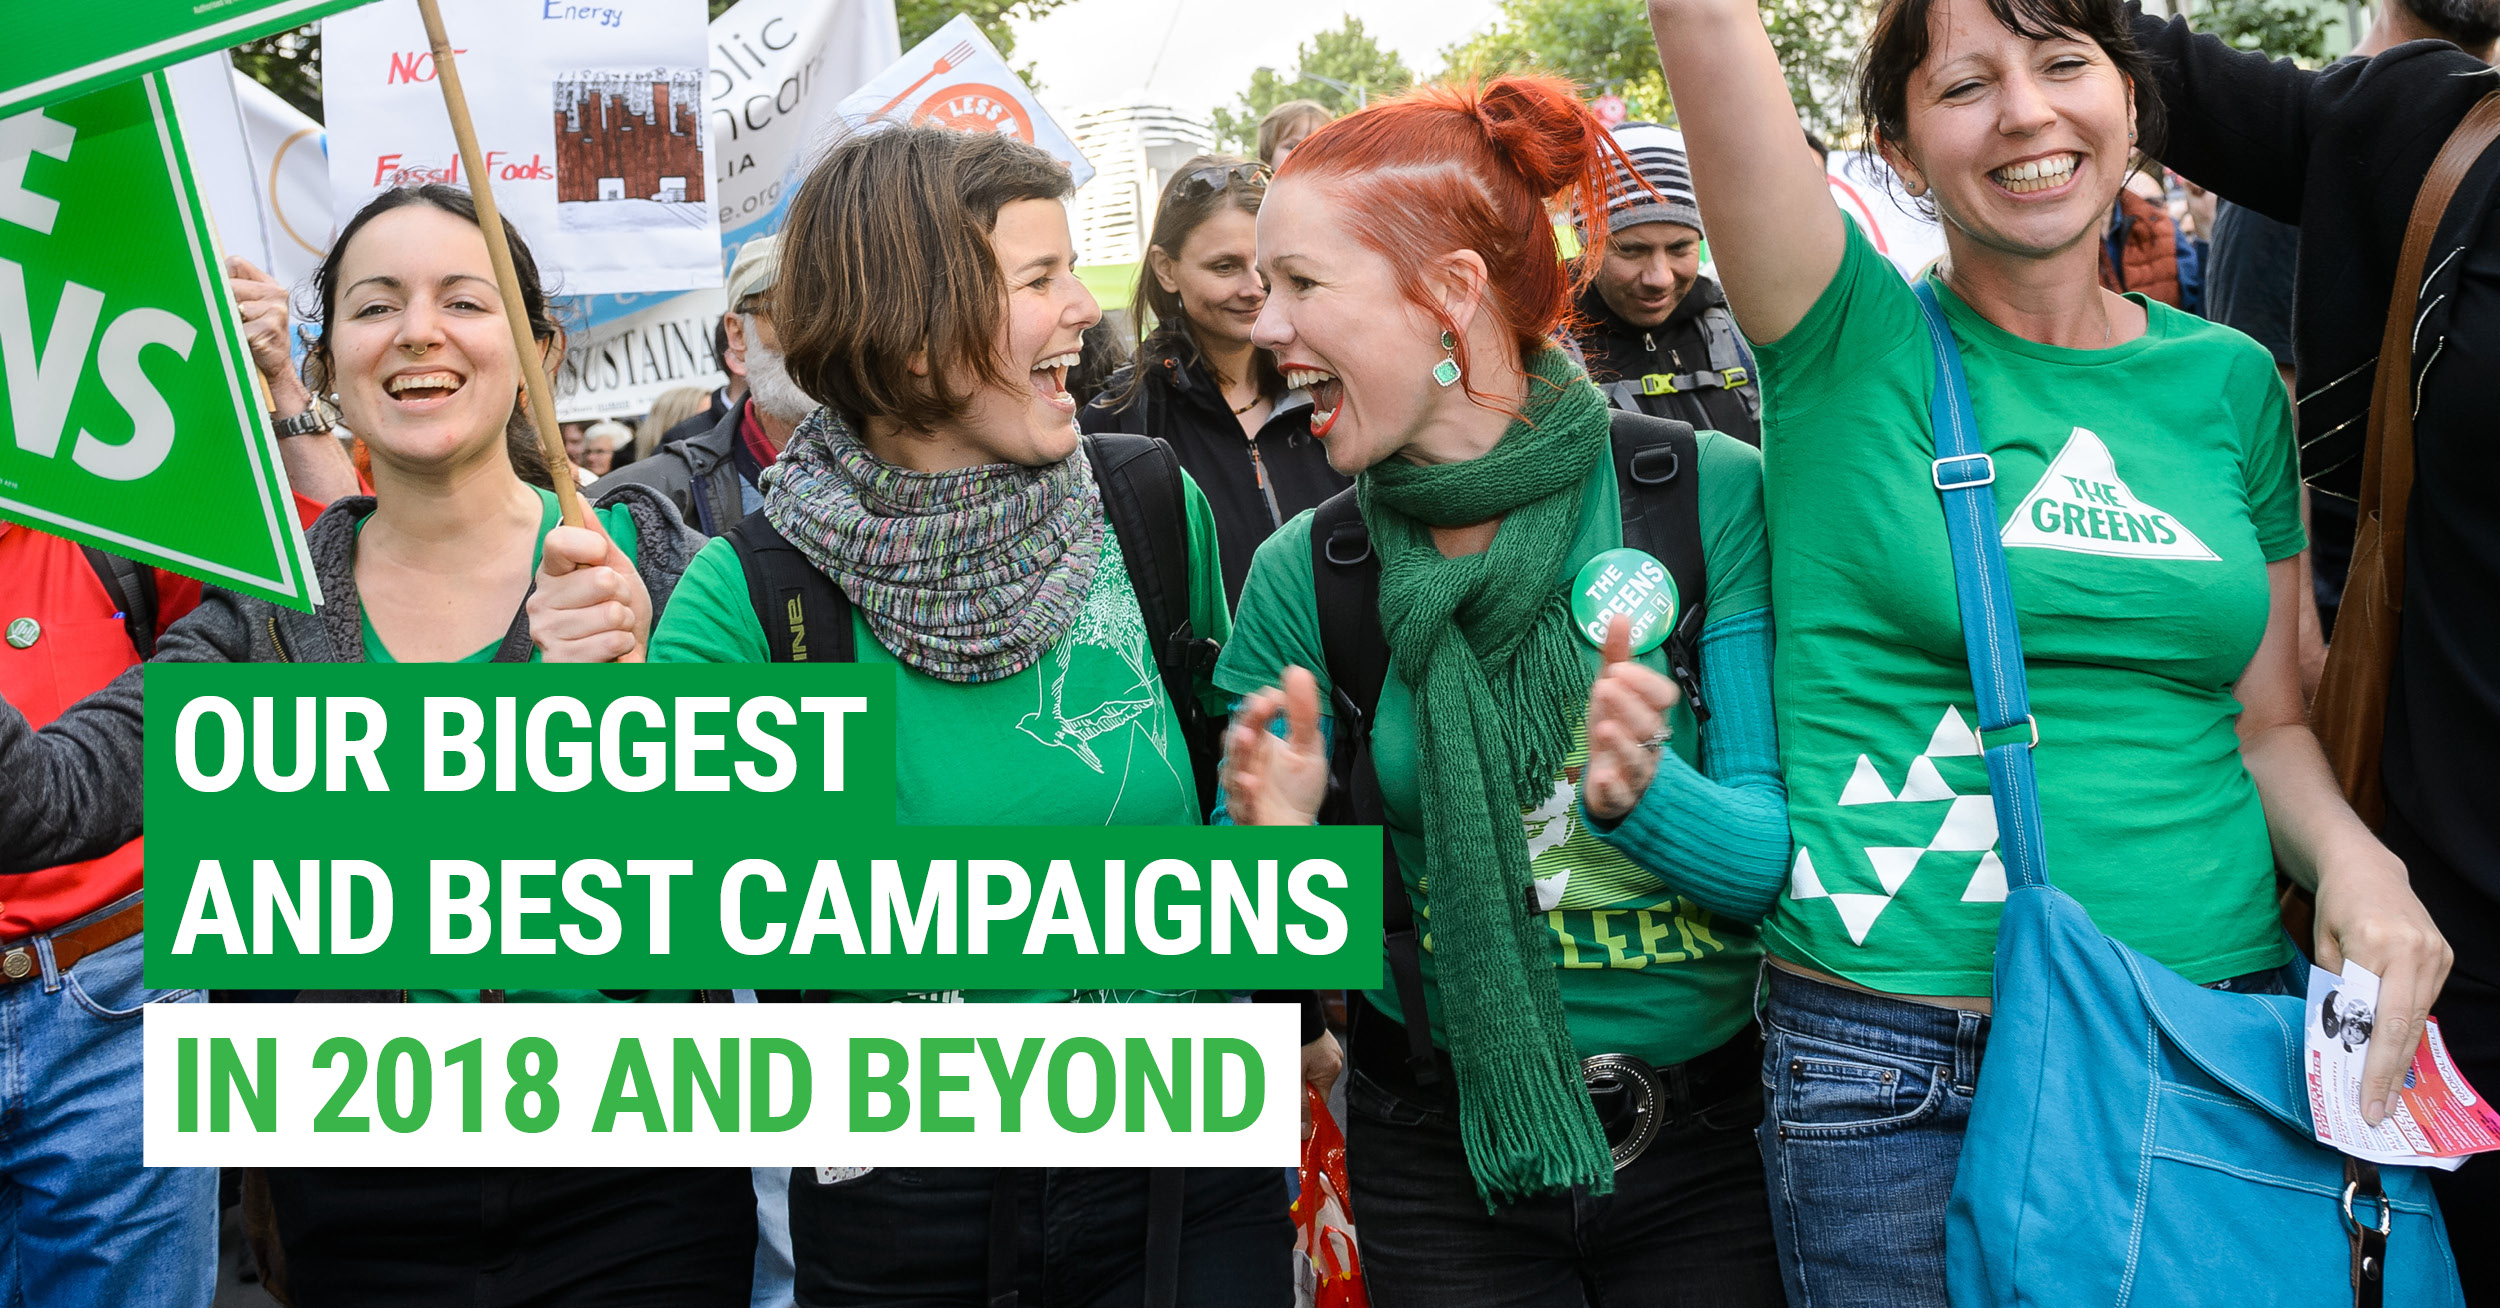 Biggest campaigns in 2018 and beyond